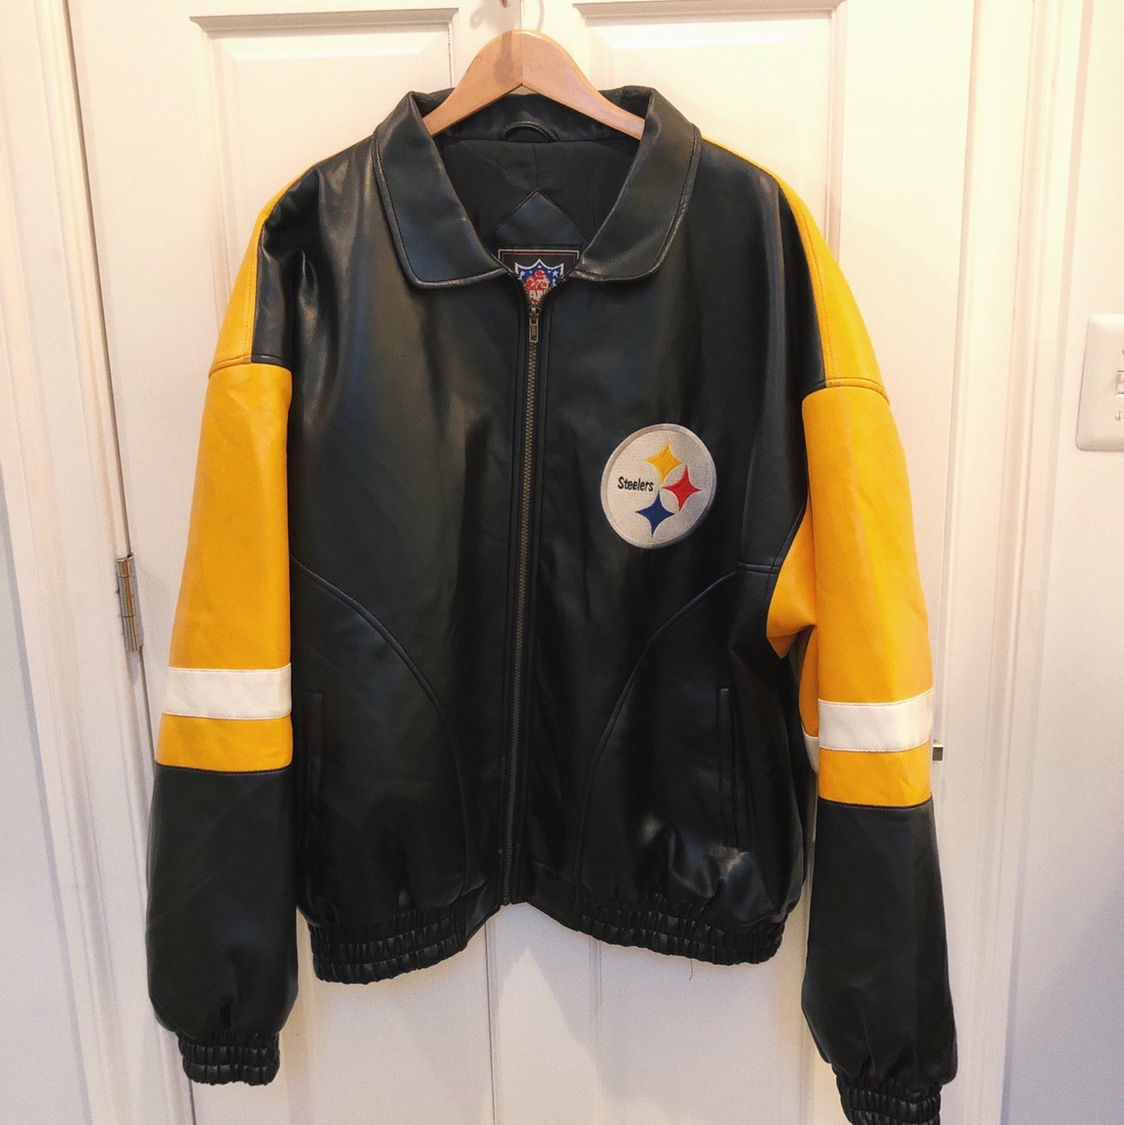 finest selection 0b363 bc9c6 Pittsburgh Steelers Synthetic Leather Jacket. Size:... - Depop